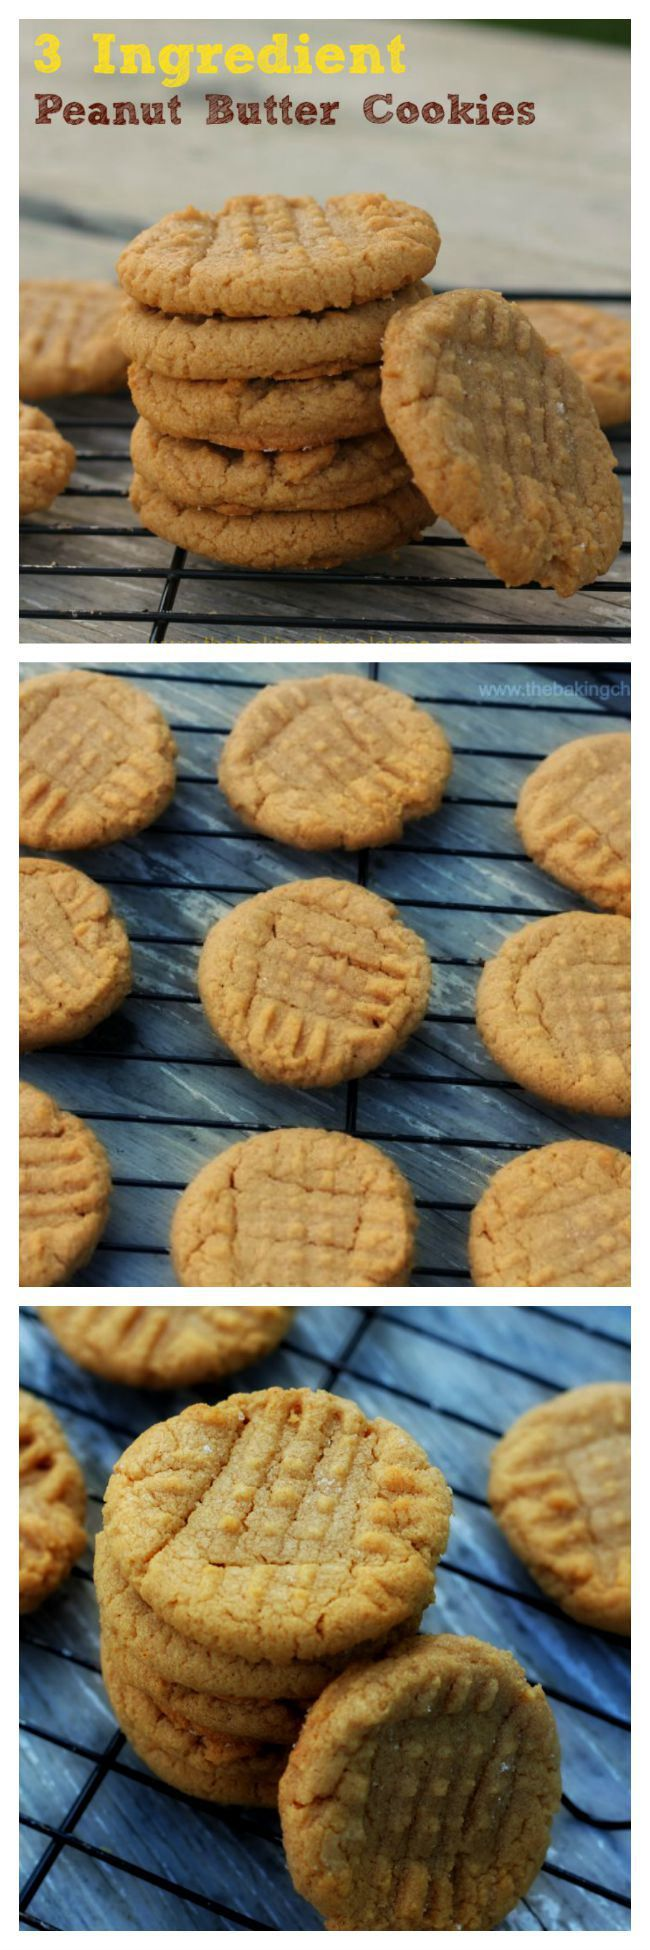 3 Ingredient Peanut Butter Cookiescollage